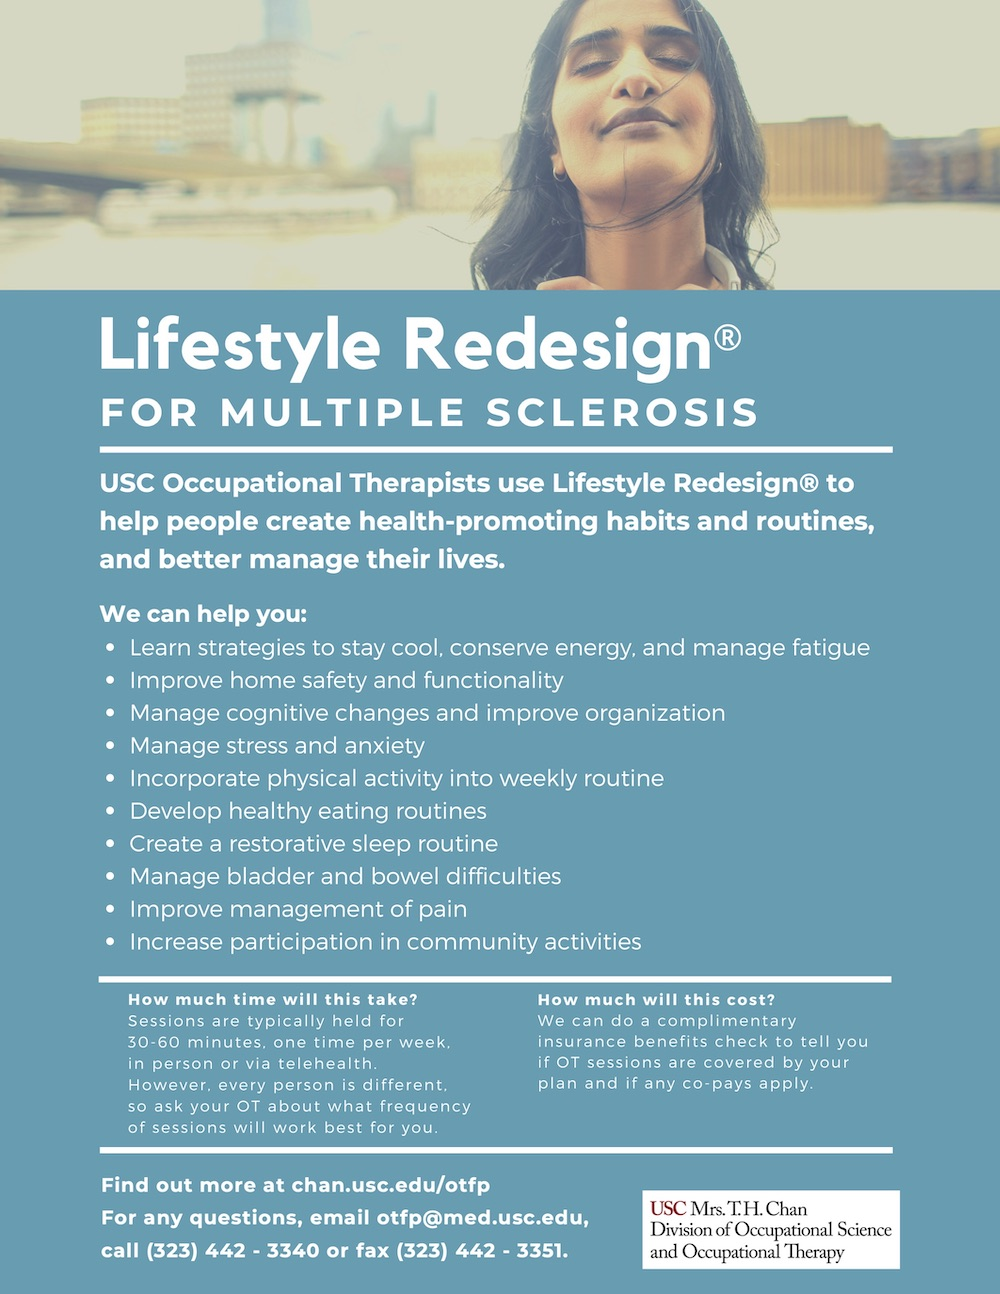 Lifestyle Redesign for Multiple Sclerosis